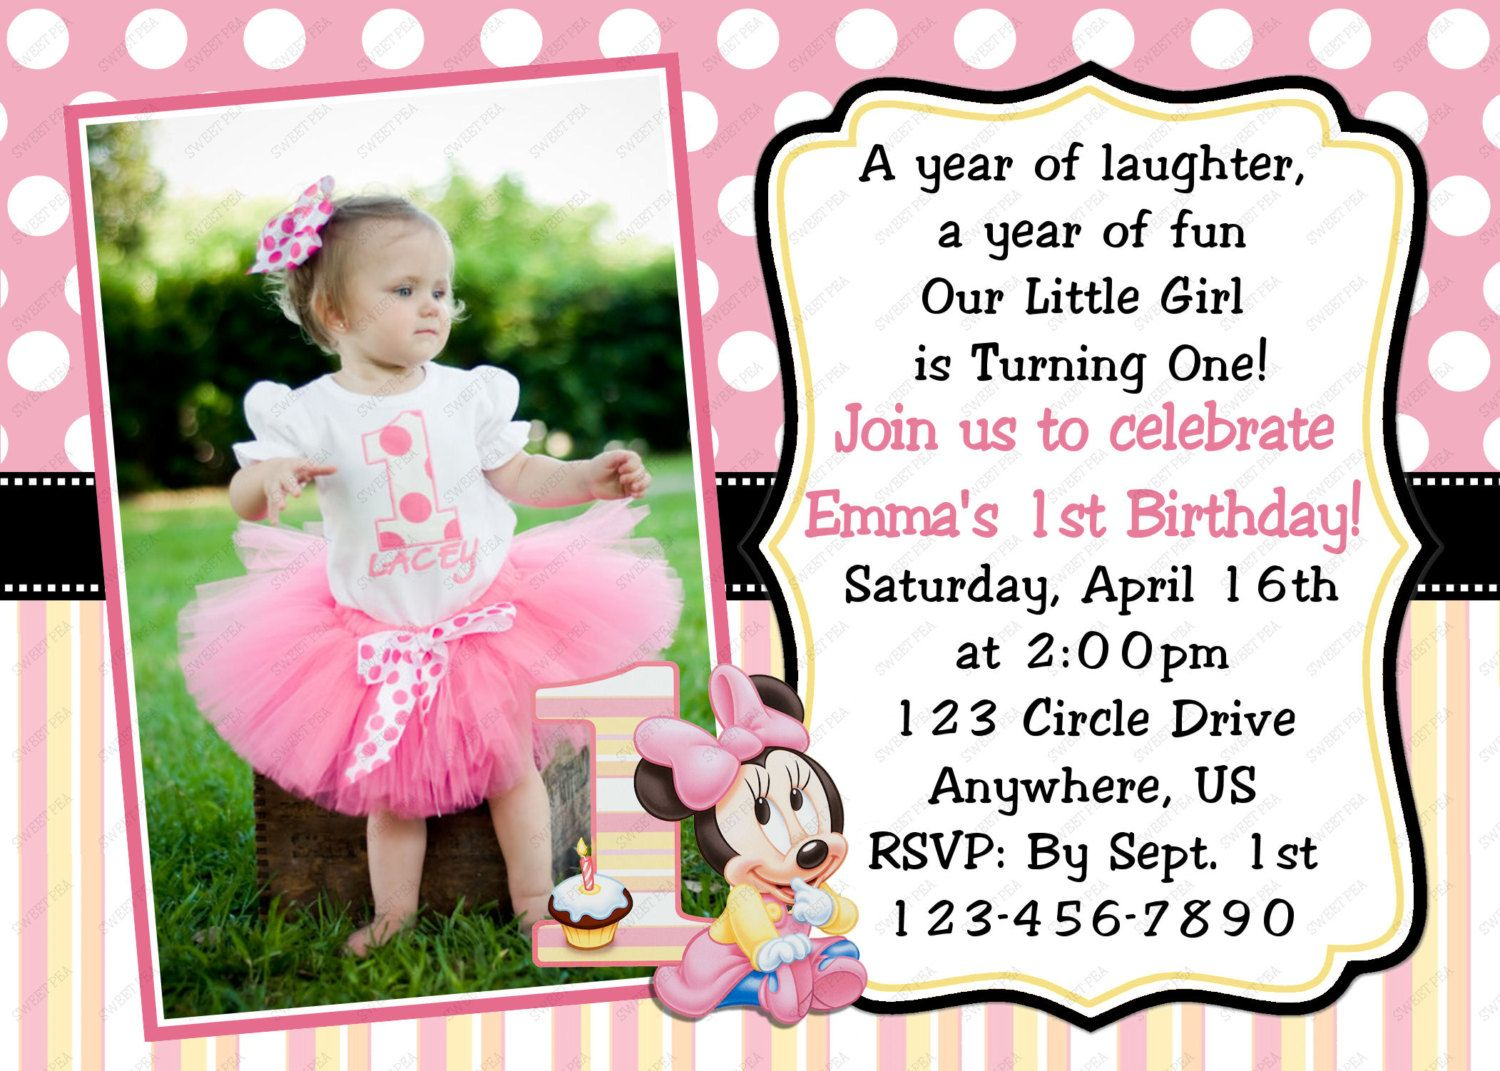 Wondrous Minnie Mouse Invitations 1St Birthday With Images Birthday Funny Birthday Cards Online Inifofree Goldxyz